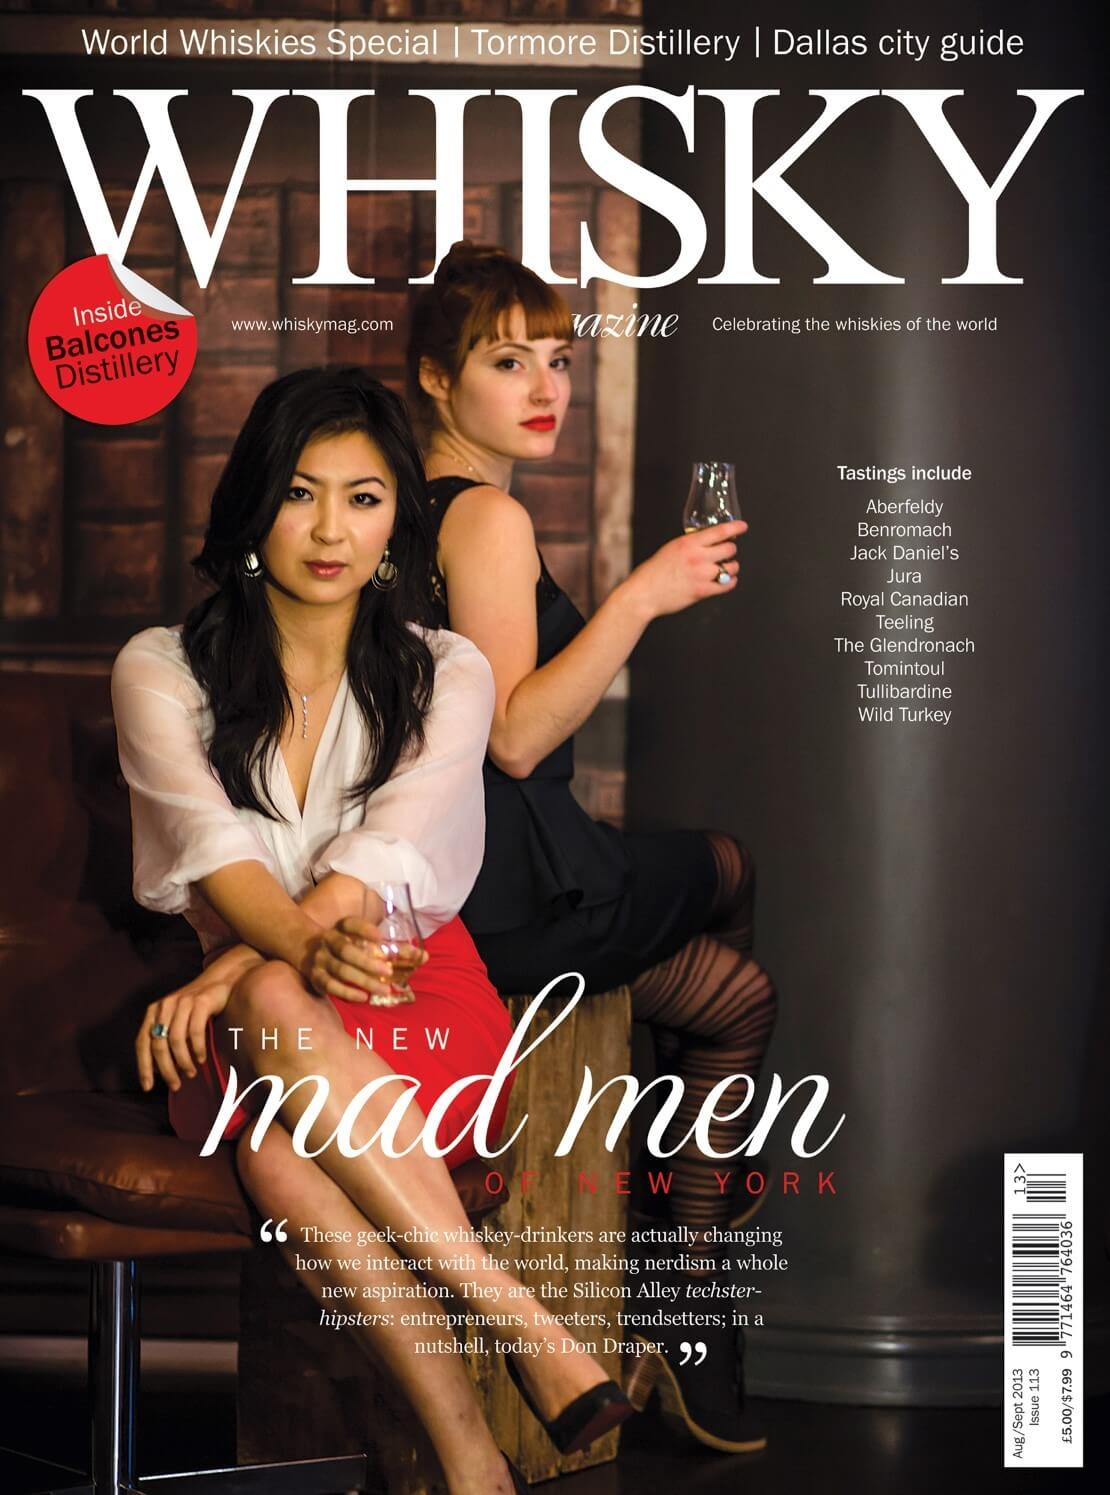 World Whiskies Special Tormore Distillery Dallas City Guide